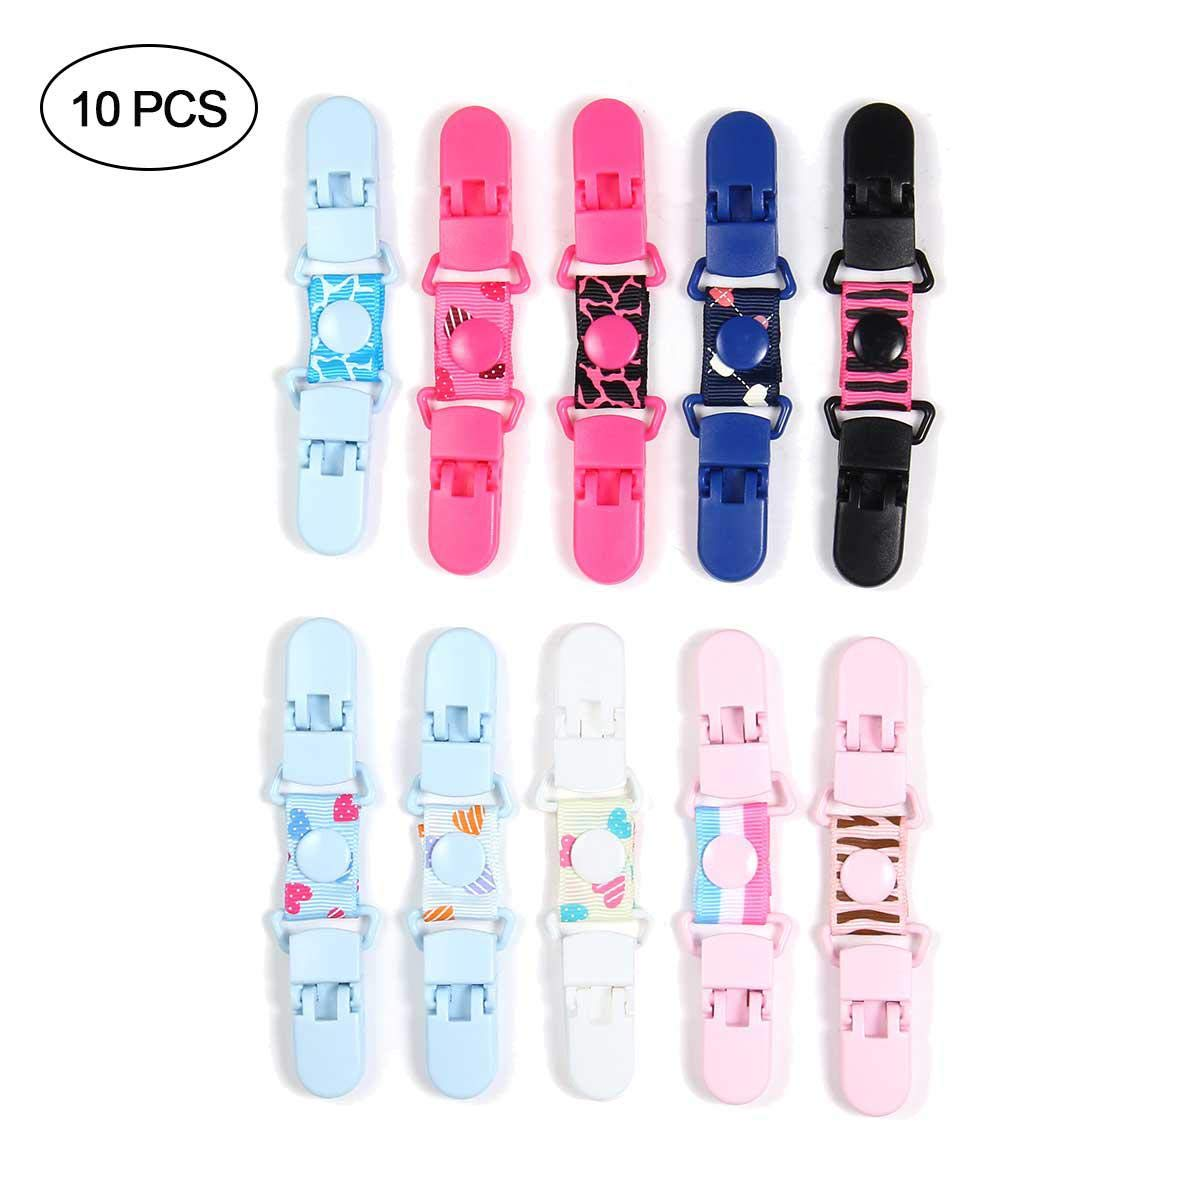 10 Pcs Baby and Kids Strong Stainless Steel Mitten Clips,Extra Strong Stainless Steel Elastic Glove and Mitten Clips Aolvo